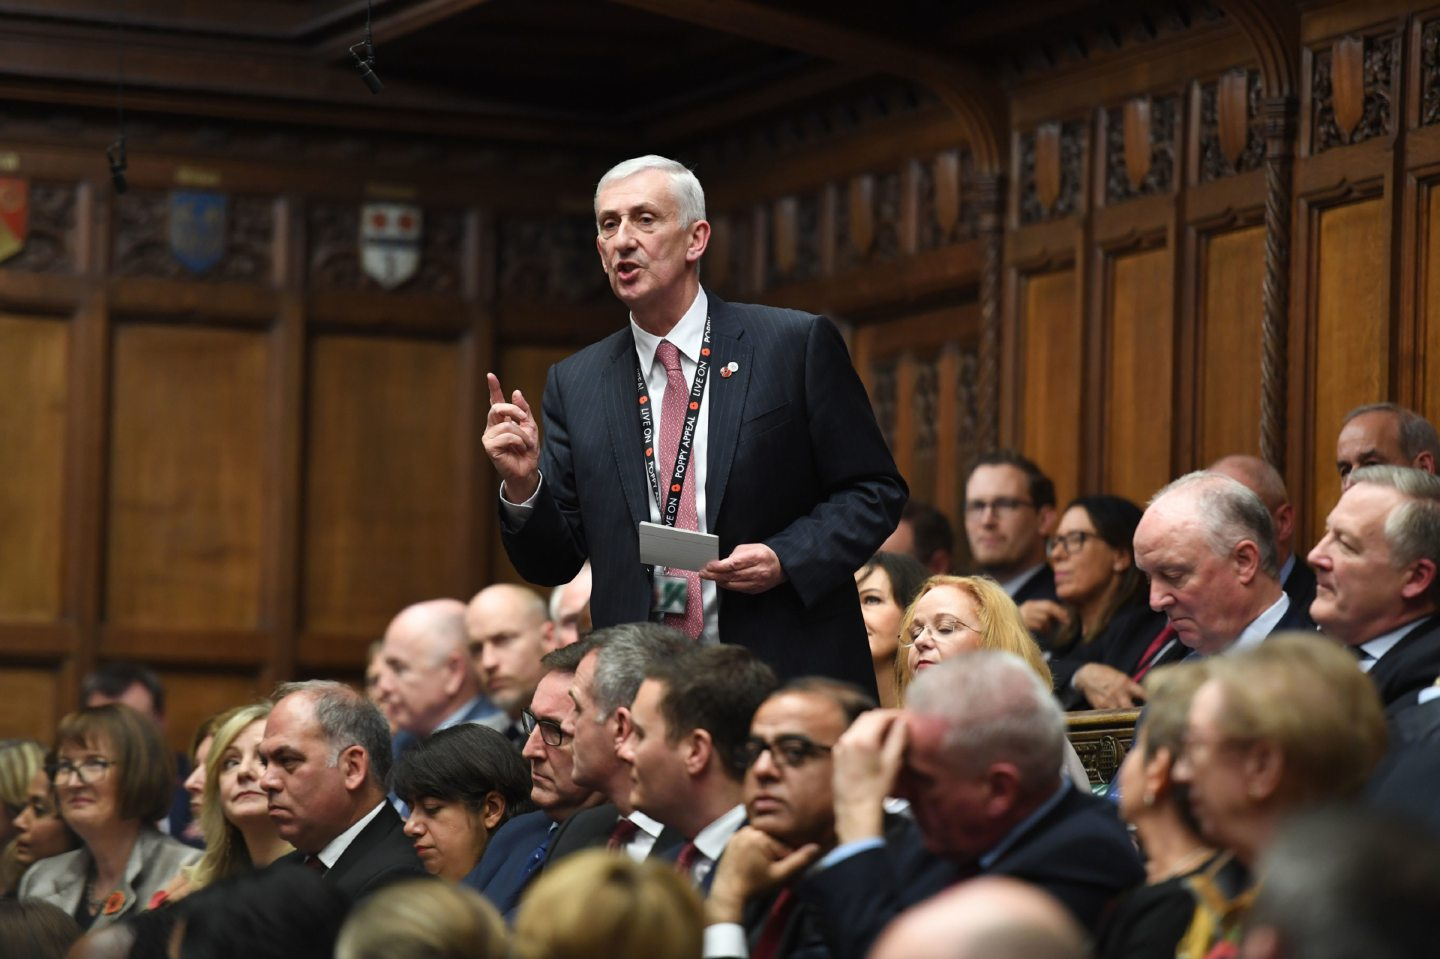 Sir Lindsay Hoyle making his plea to be elected speaker of the House of Commons.